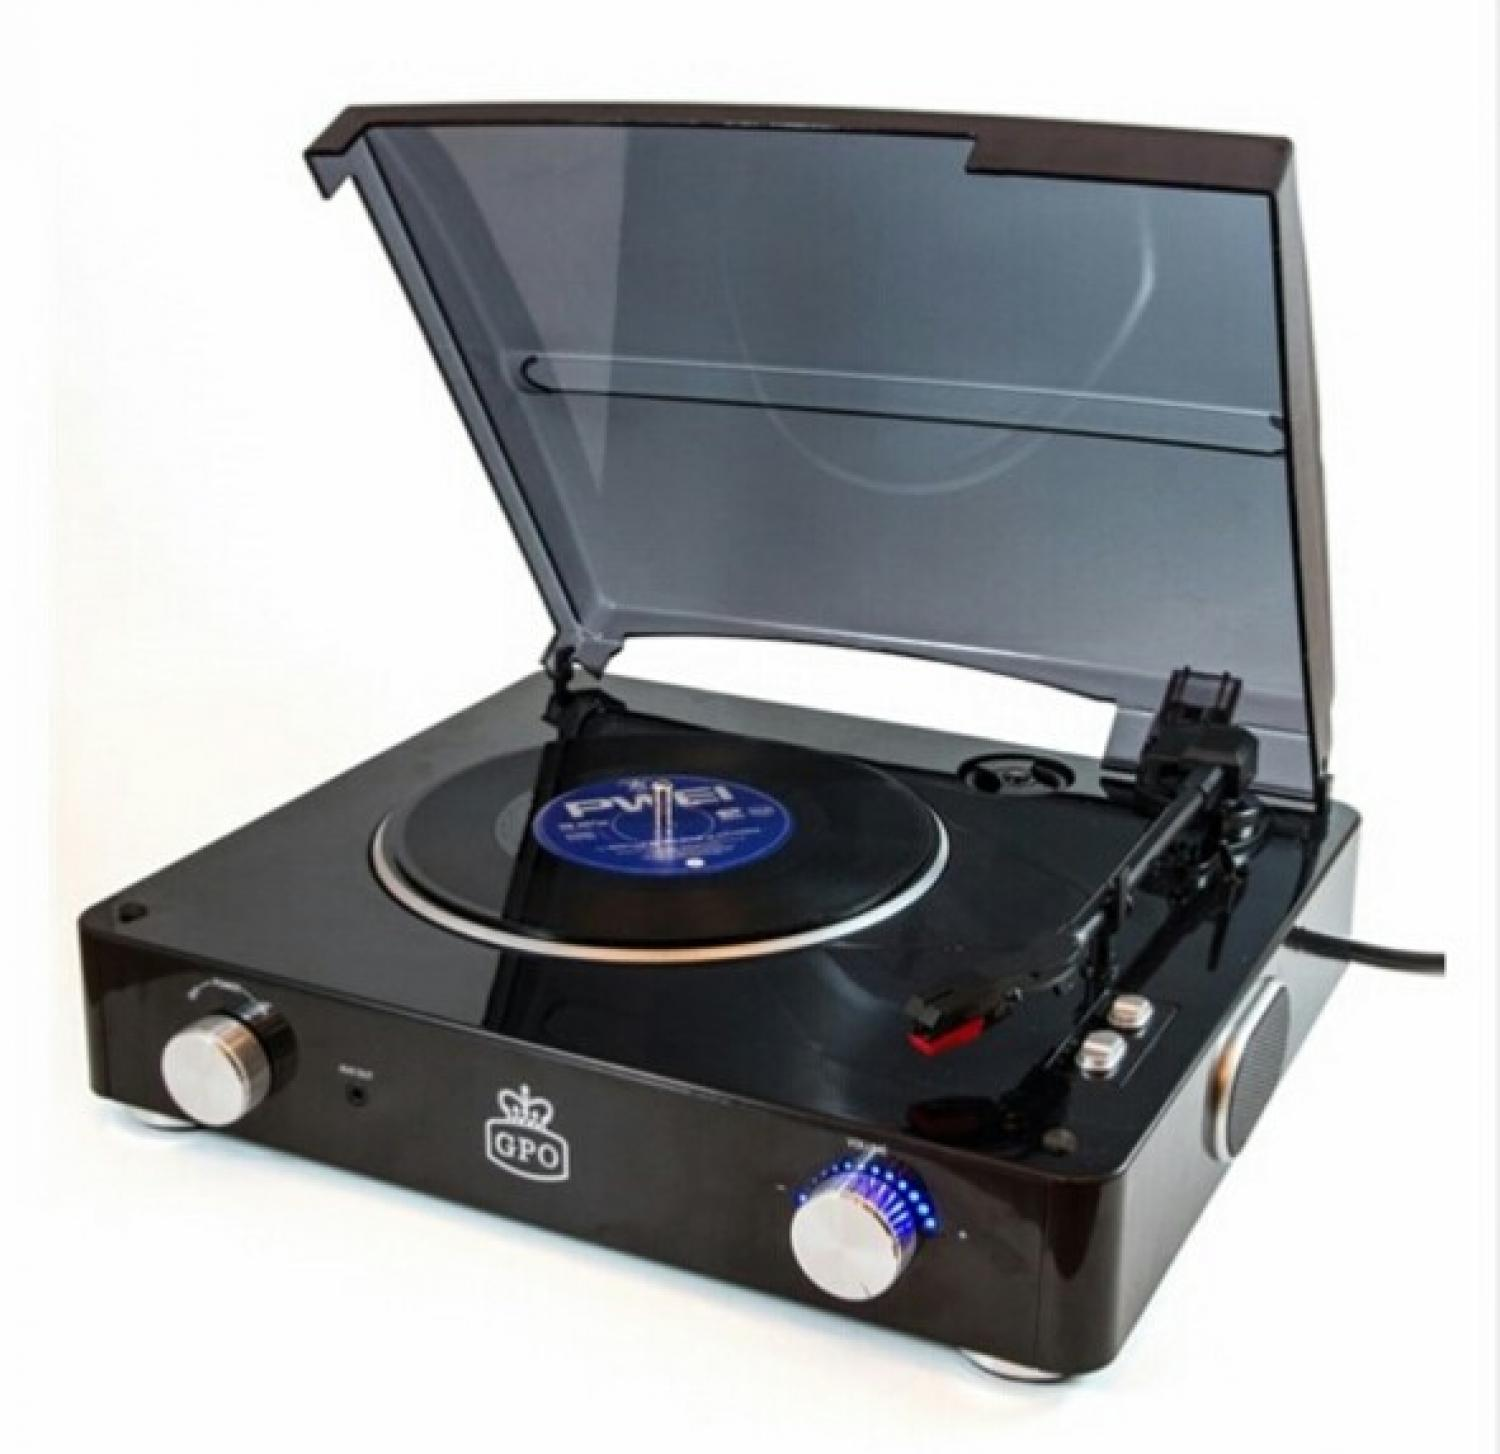 GPO Stylo Record Player black